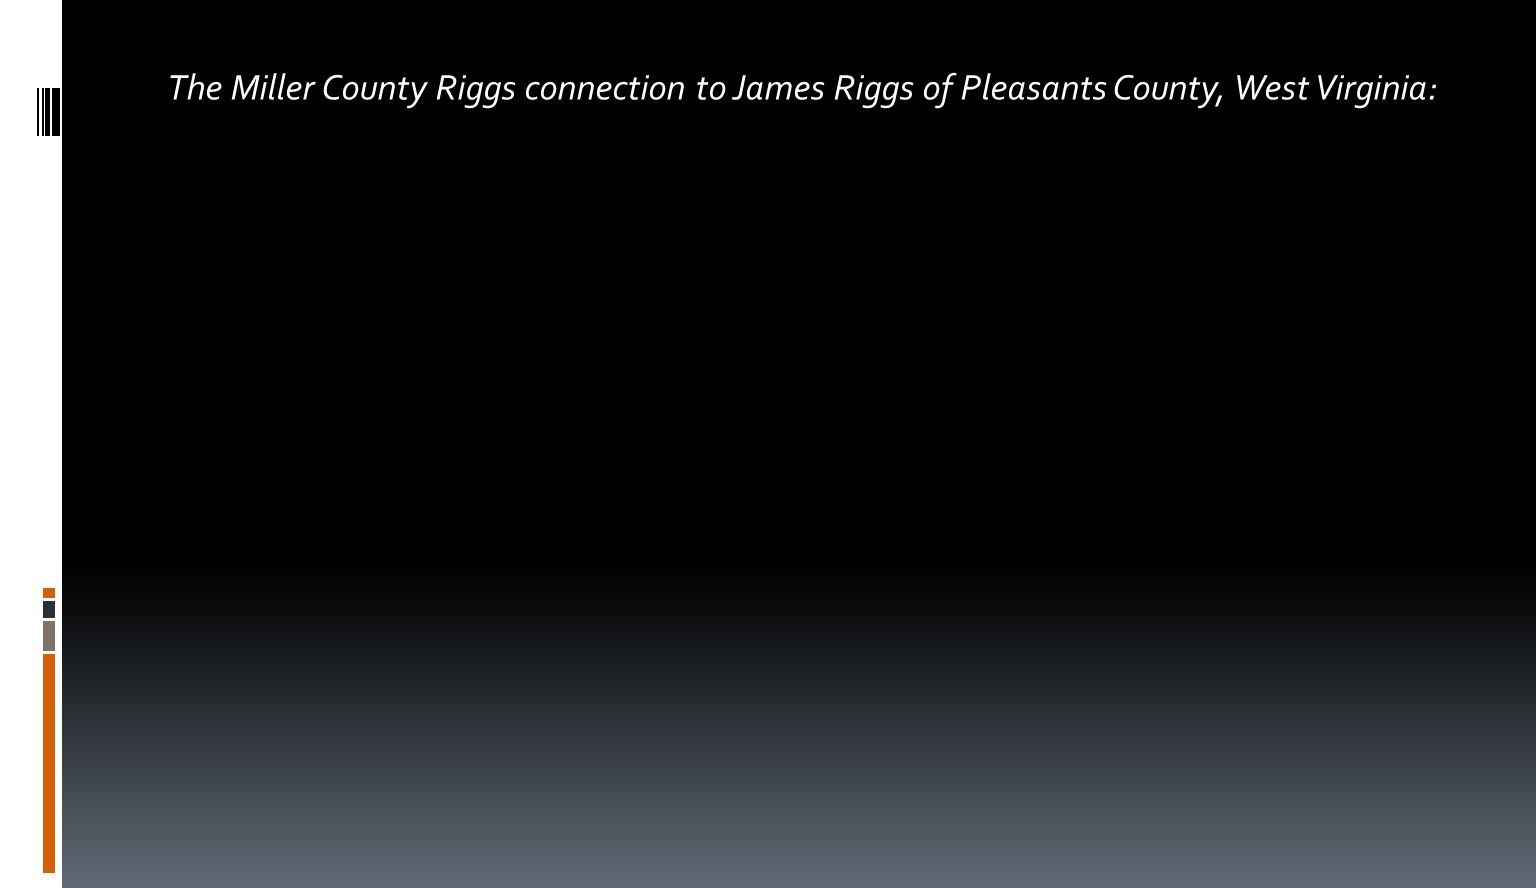 The Miller County Riggs connection to James Riggs of Pleasants County, West Virginia: